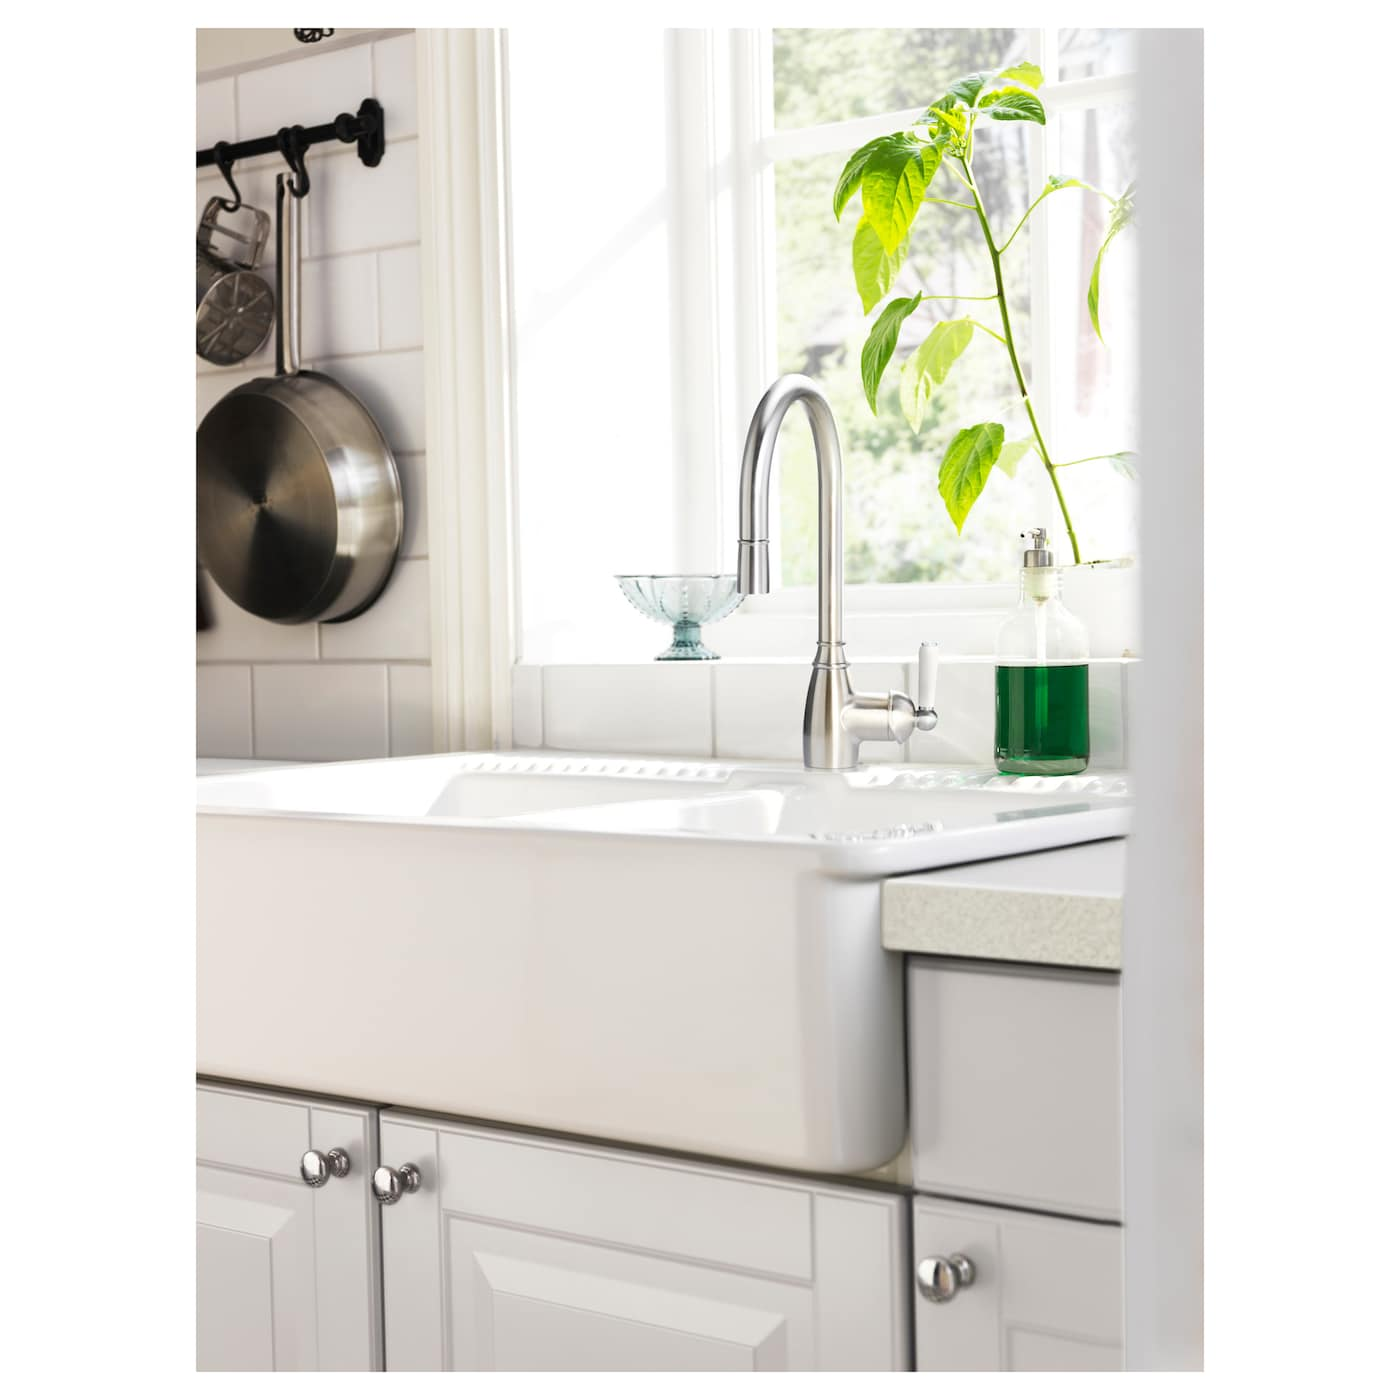 IKEA ELVERDAM kitchen mixer tap 10 year guarantee. Read about the terms in the guarantee brochure.